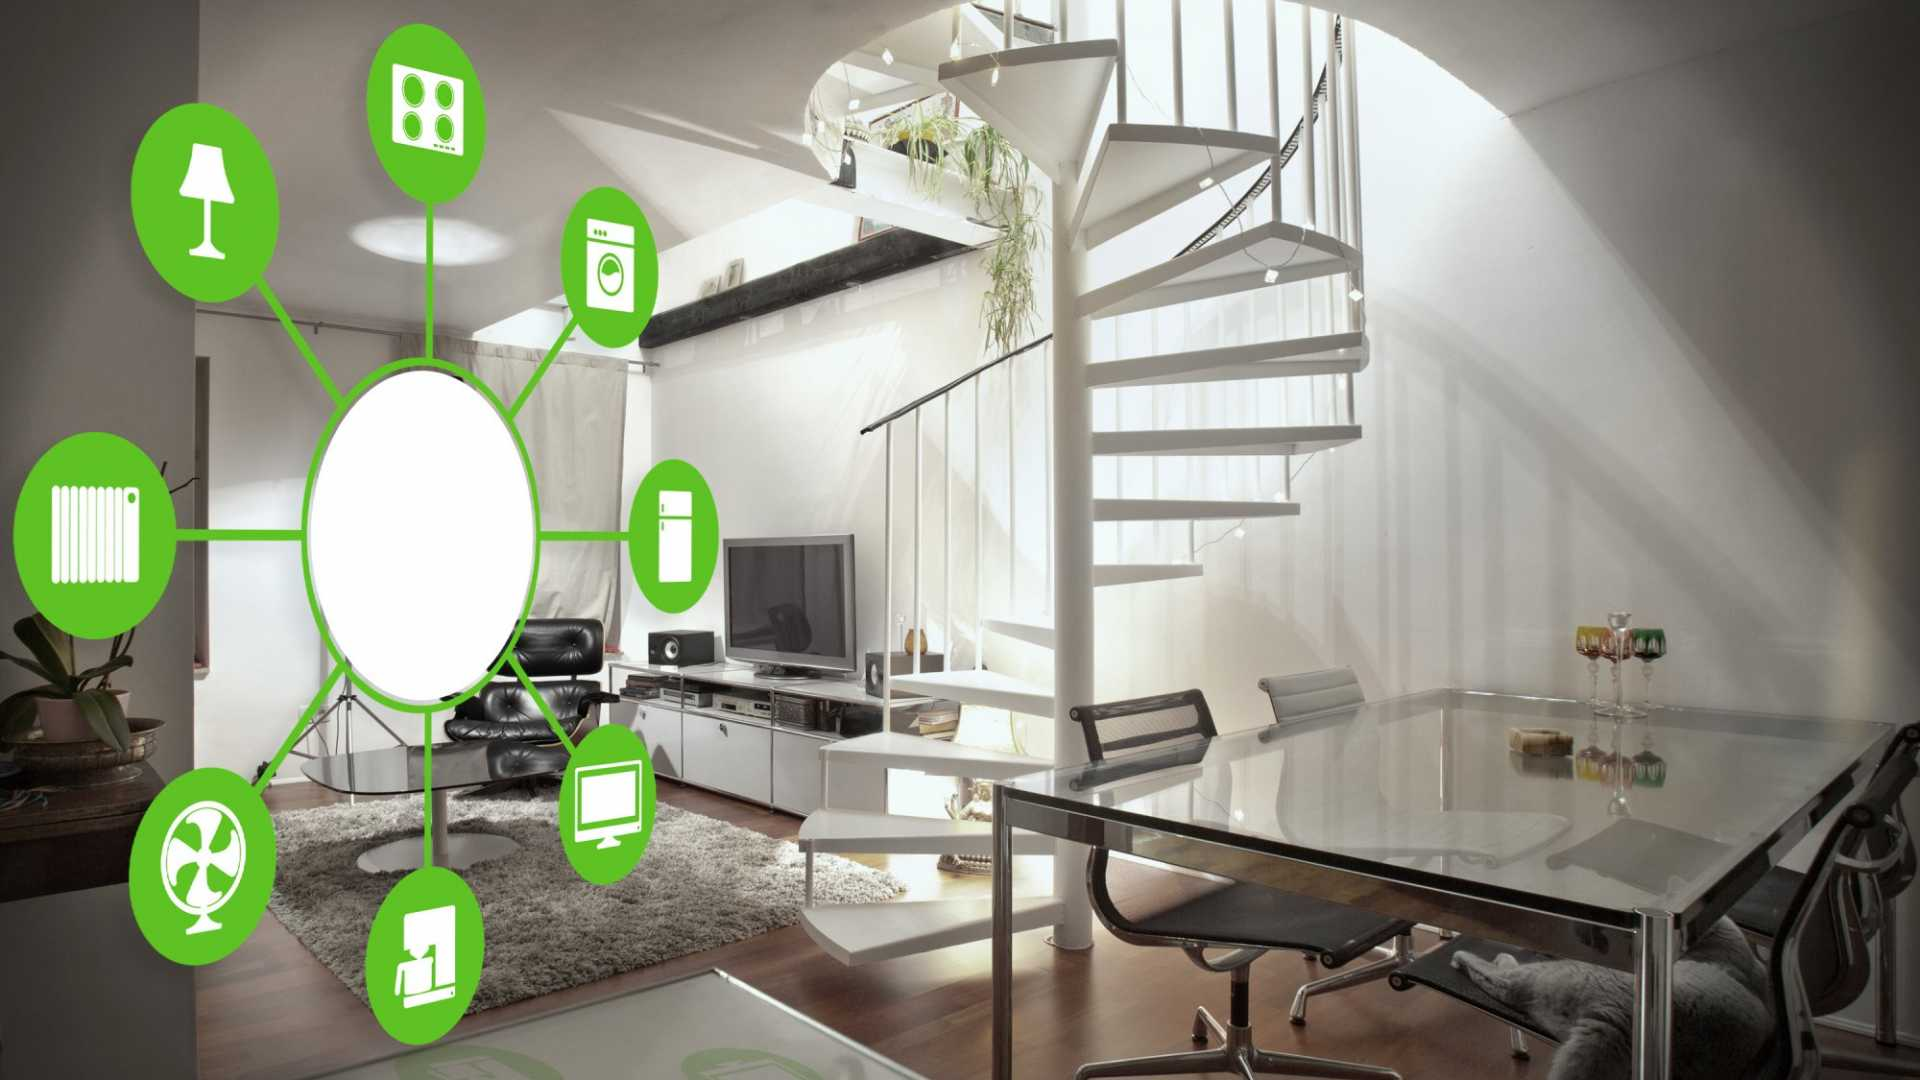 'Smart Homes' Will Look Less Like the Jetsons, and More Like Tricked-Out Versions of Everyday Spaces